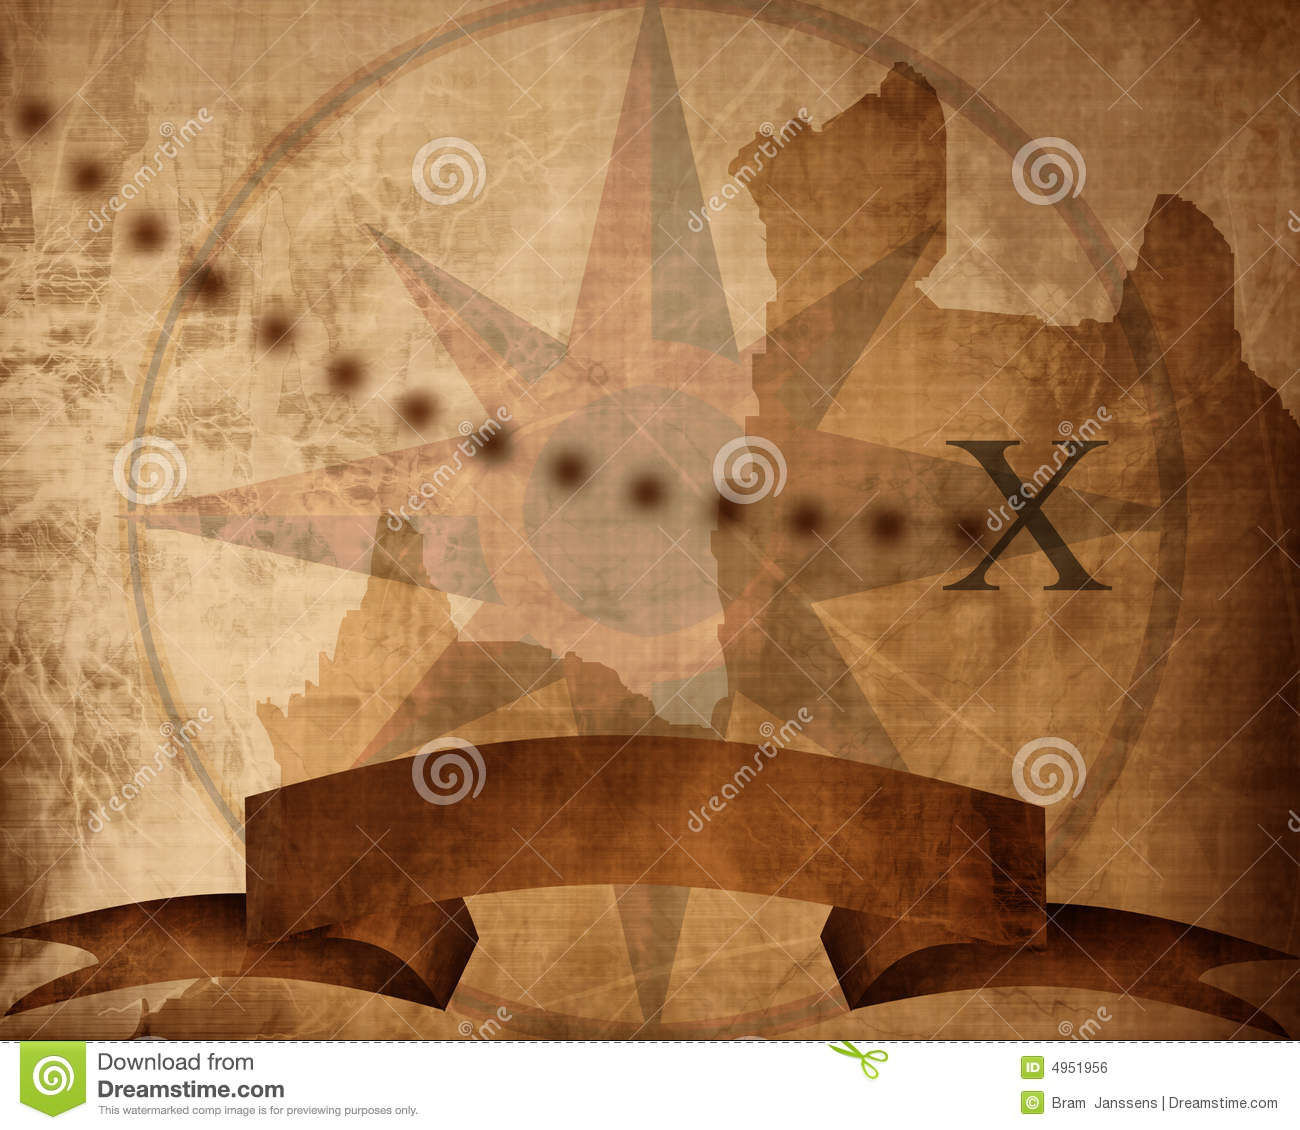 treasure map paper Download treasure map stock photos affordable and search from millions of royalty free images, photos and vectors thousands of images added daily.